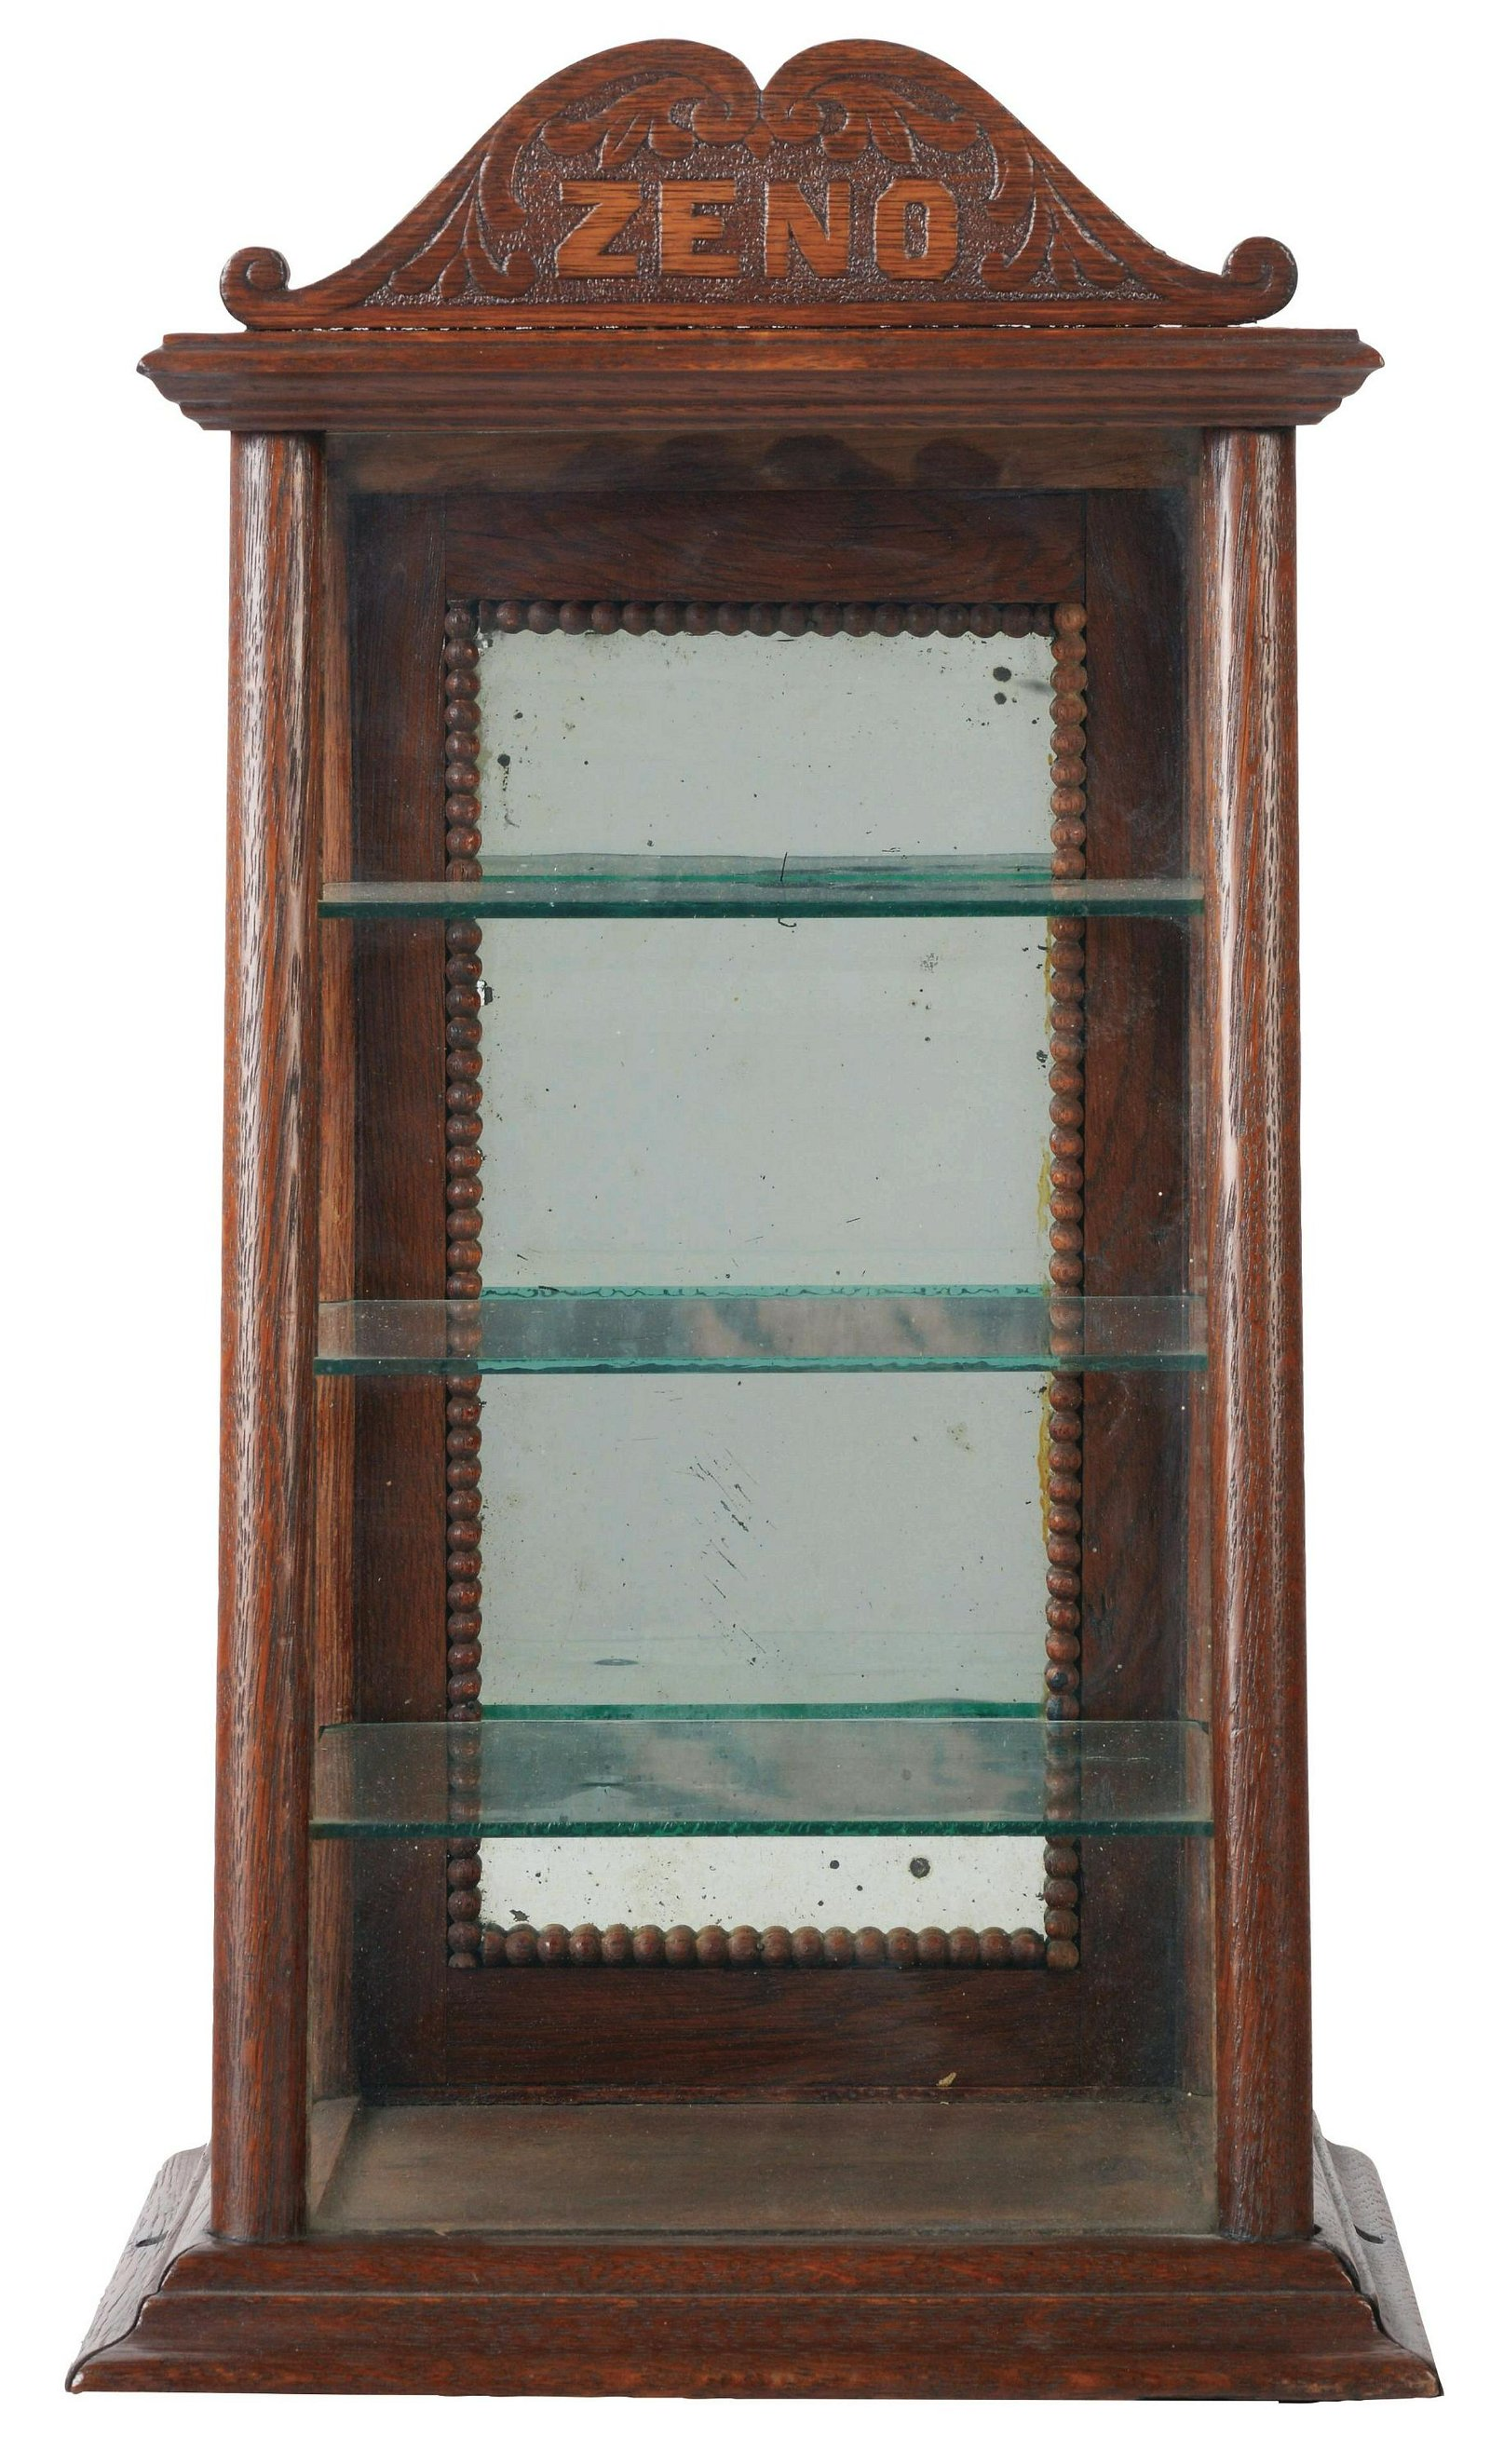 Circa 1900 - 1910 Zeno Gum Display Case.